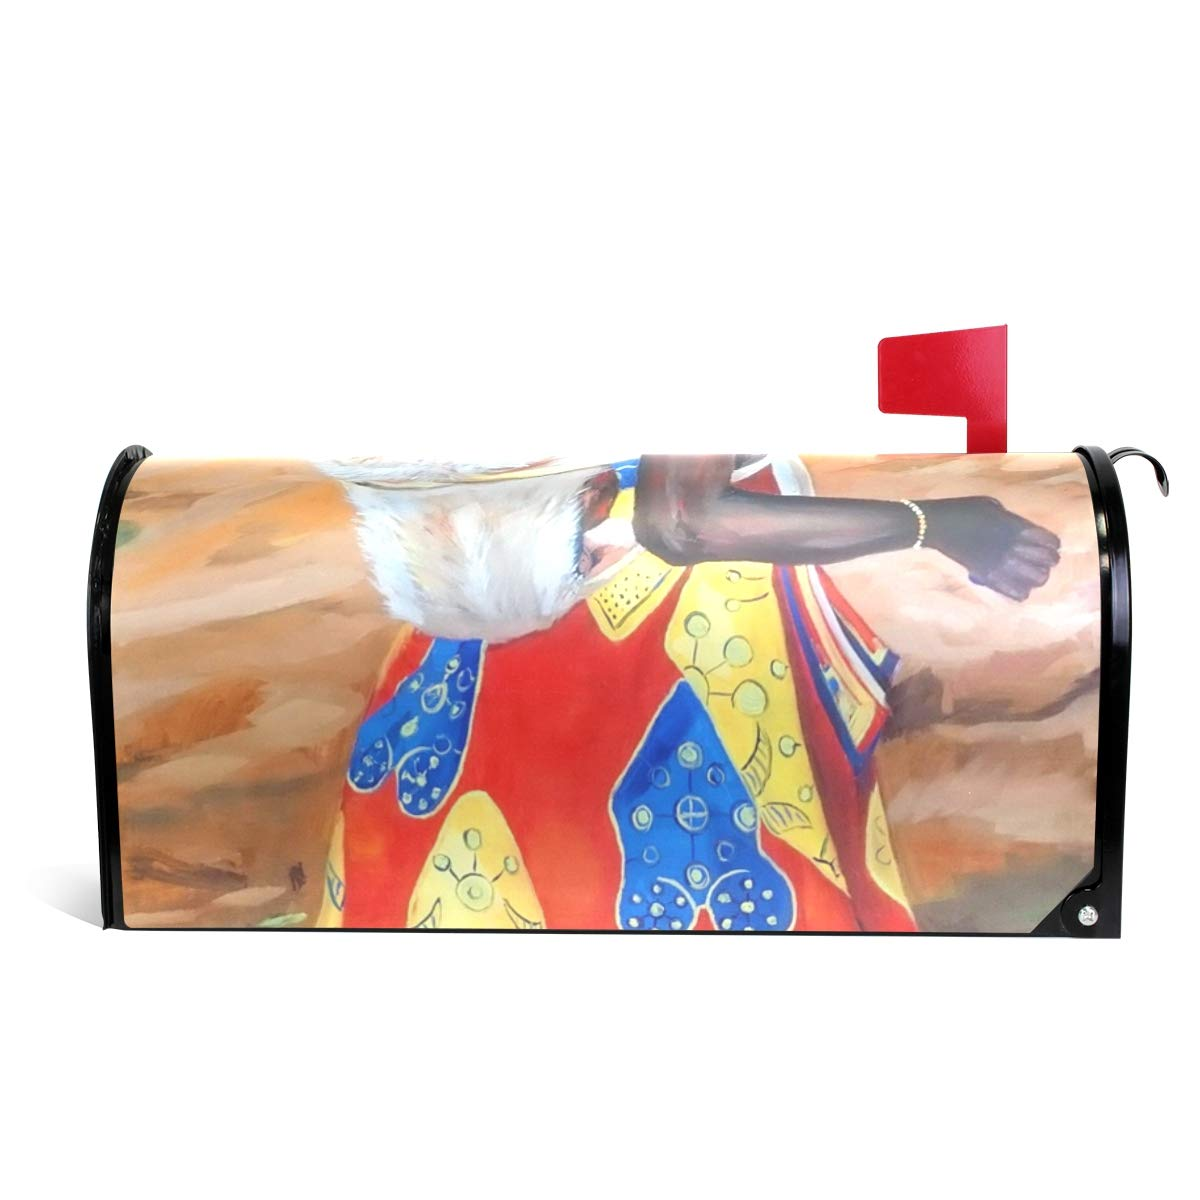 Ladninag Mailbox Covers Magnetic Oil Portrait Art of African American Woman Standard